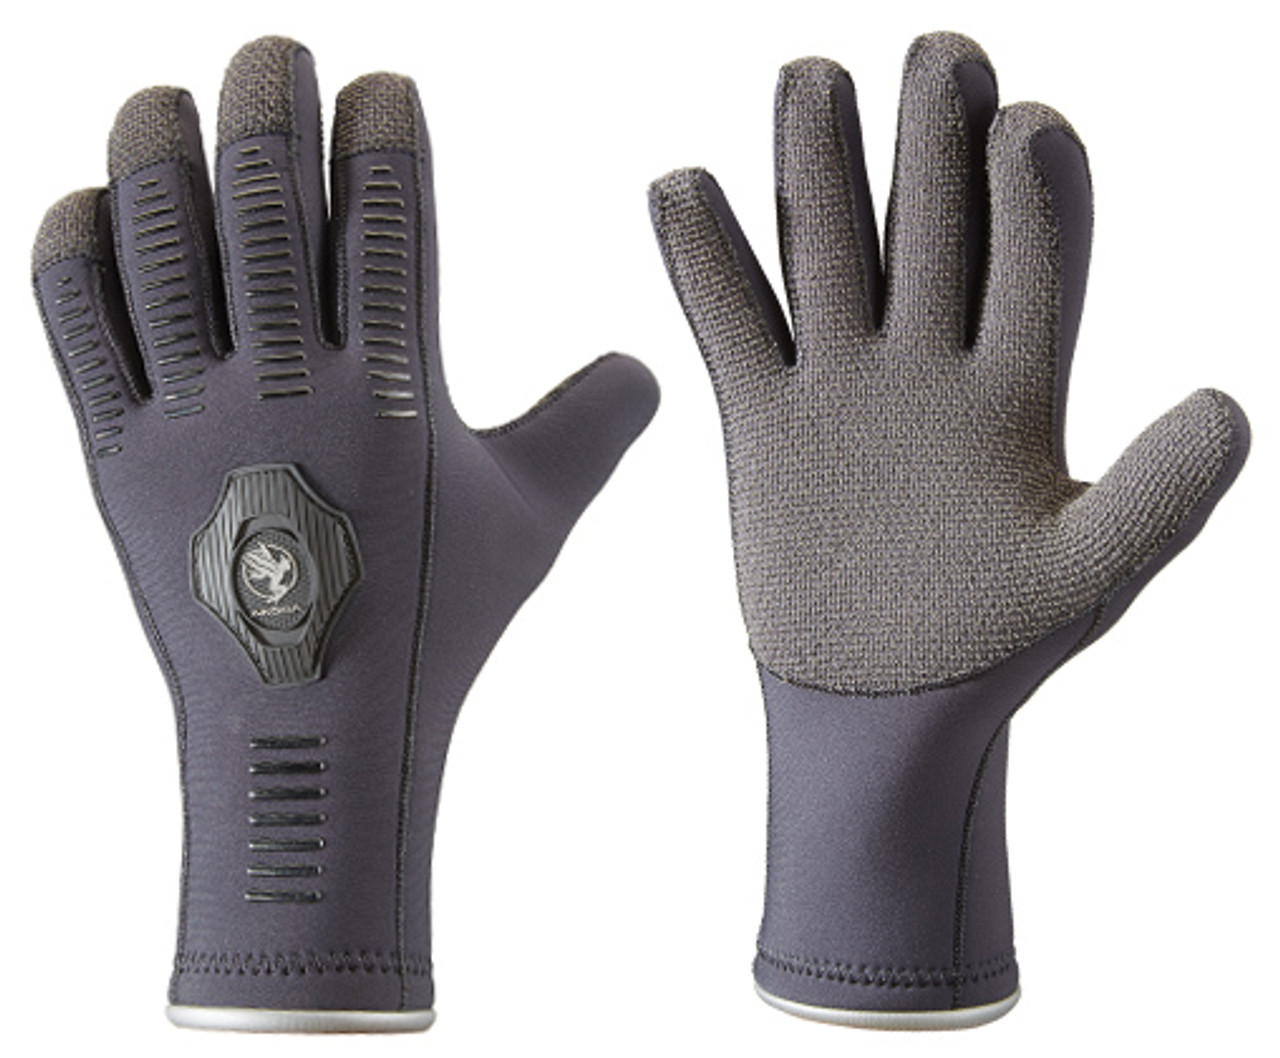 Akona ArmorTex 3.5mm Kevlar Gloves 2016